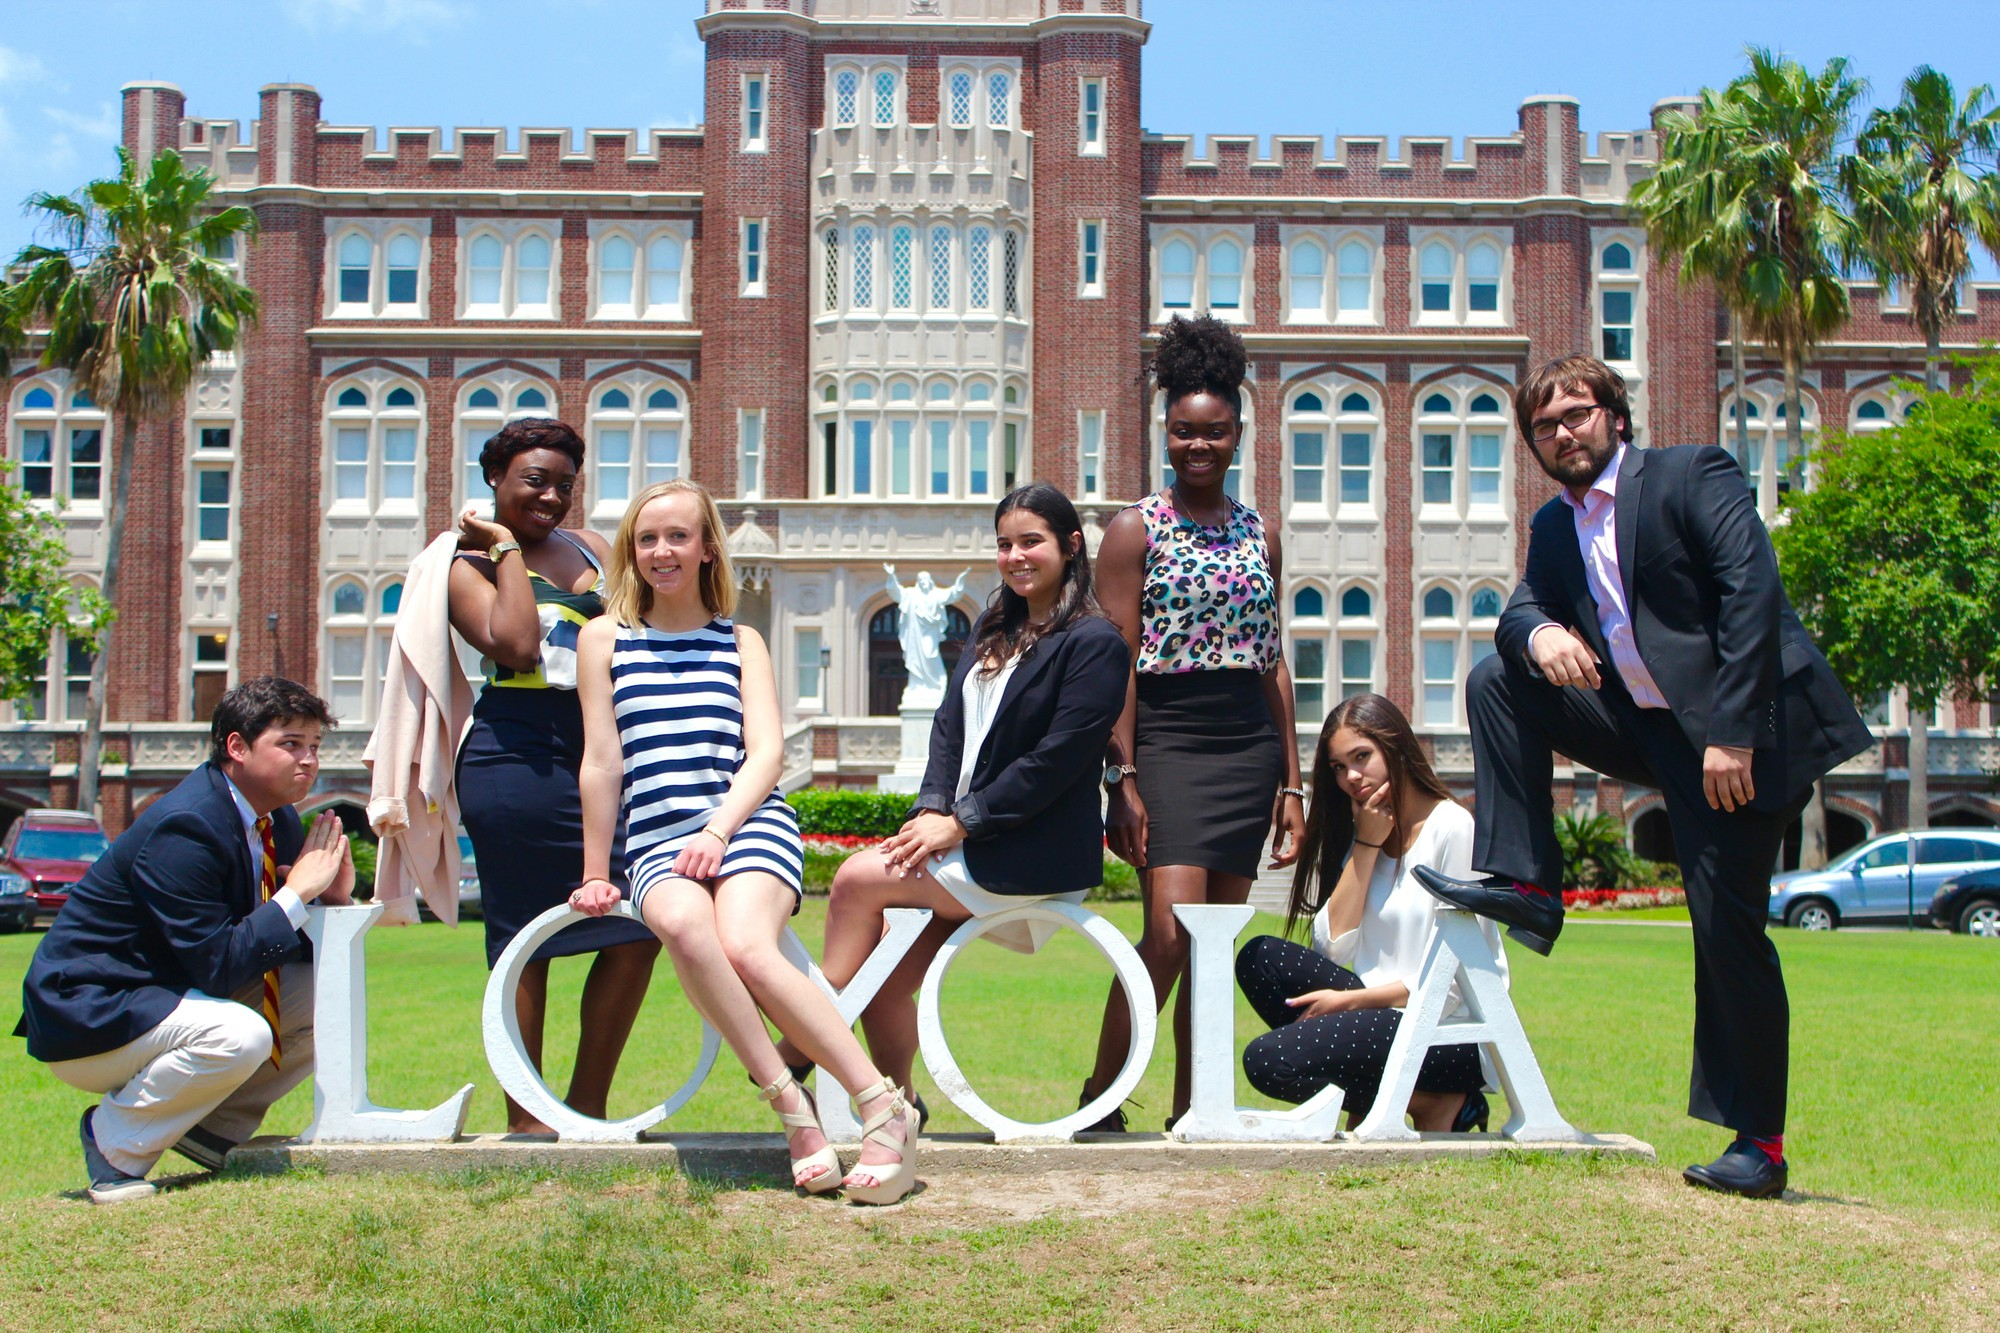 Elections season is approaching for the Student Government Association